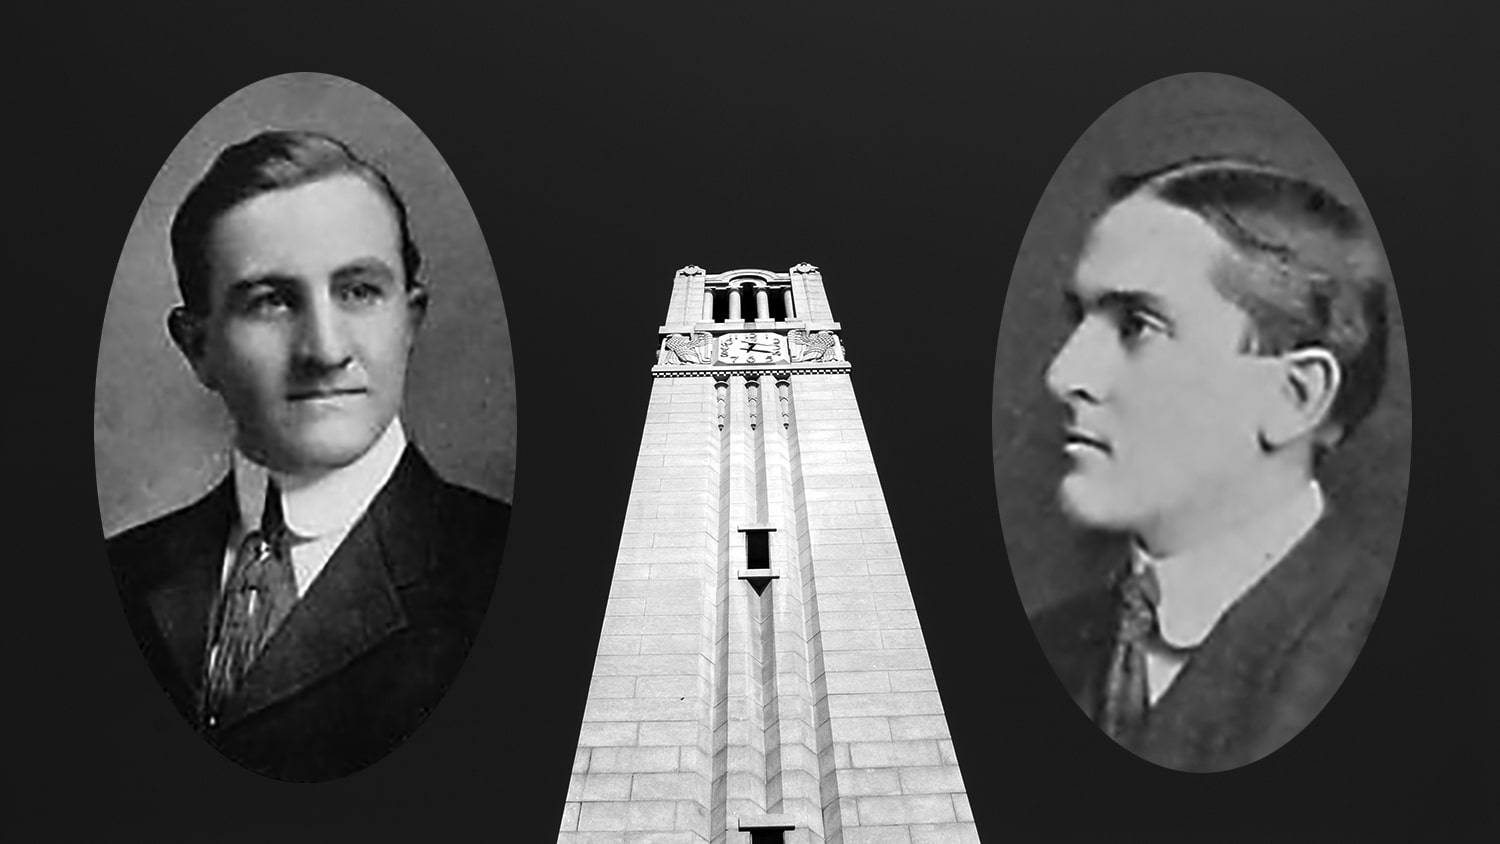 Archival photos of alumni Vance Sykes and Frank Thompson set against an image of the Belltower.